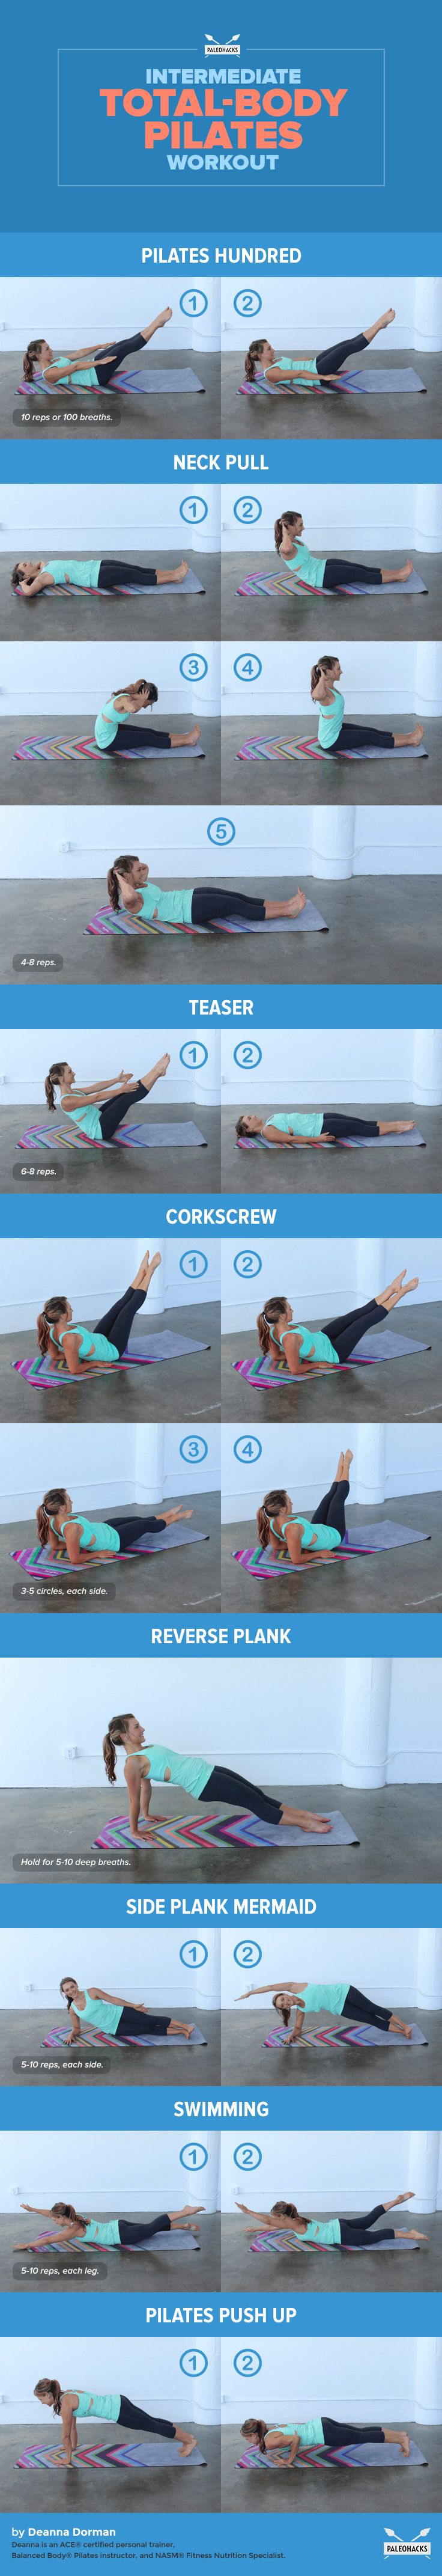 This Intermediate Pilates workout is perfect for those of you who have mastered the basic Pilates exercises and are ready for a challenge. These moves will strengthen your body from every angle — strengthening your core, increasing your flexibility and improving your posture. Plus, you can do this workout anywhere, from the gym to your living room! For the full article, visit us here: http://paleo.co/IMpilates